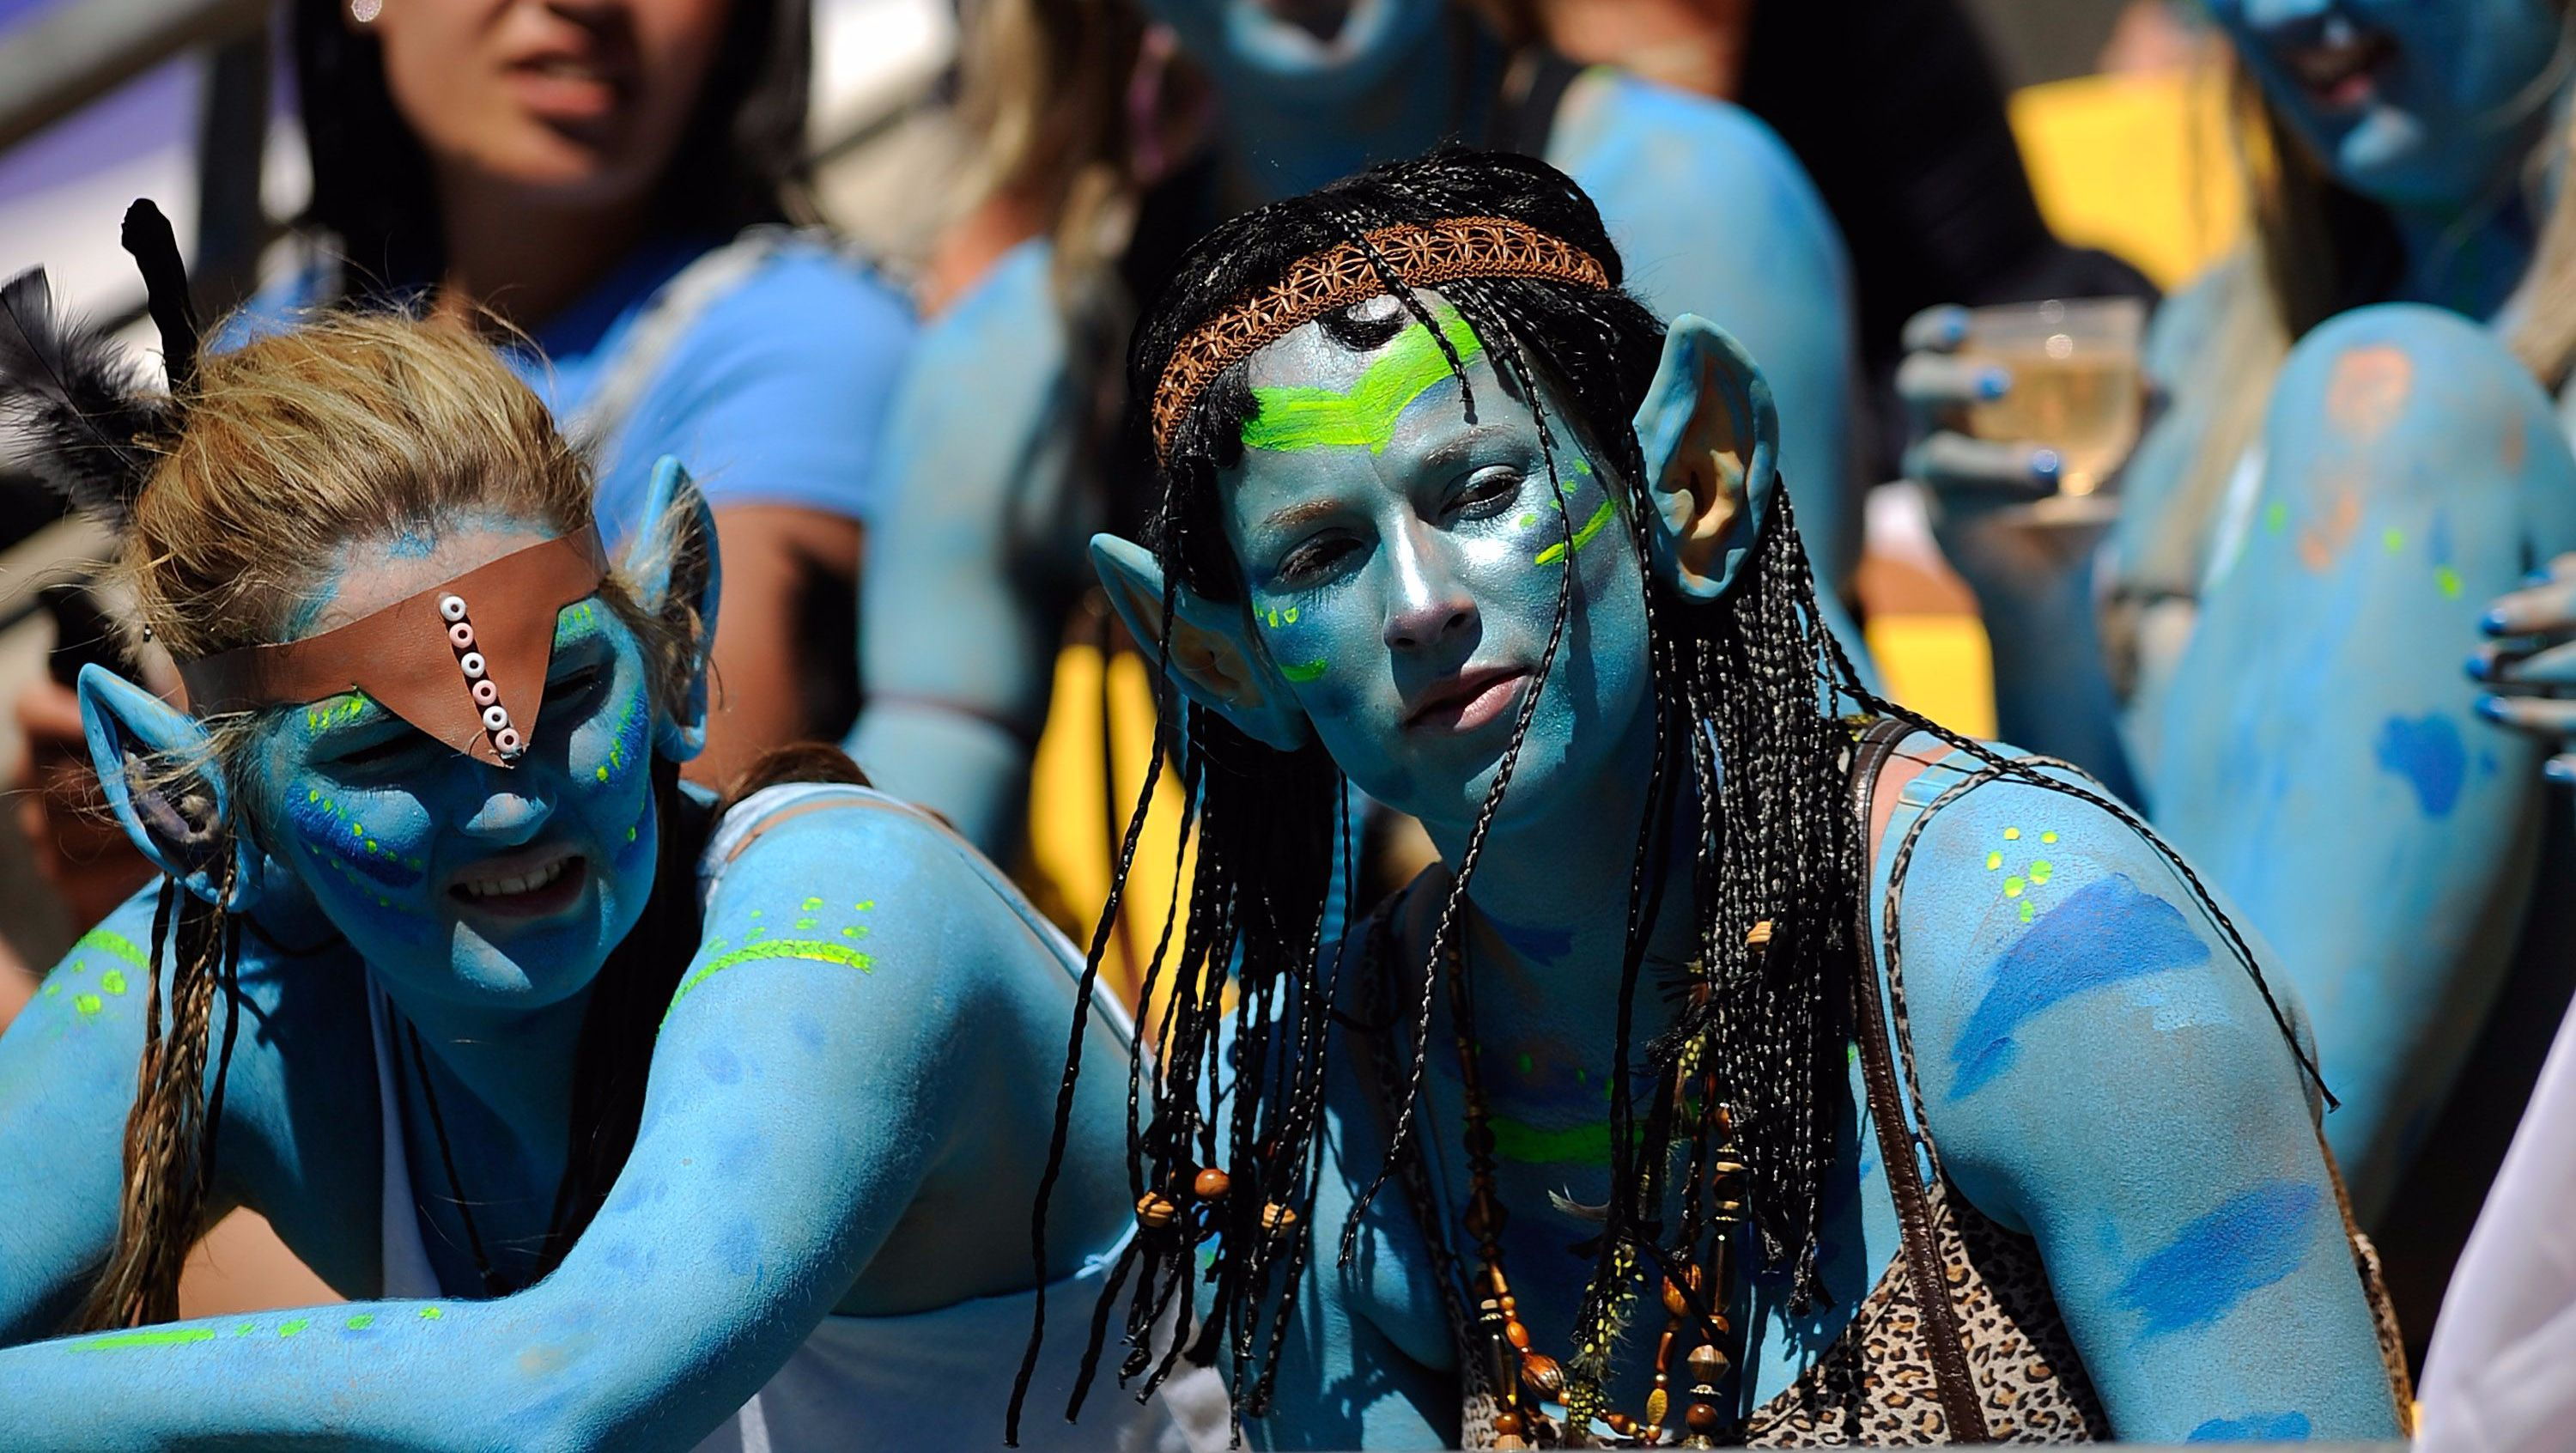 Avatar creatures are seen in blue paint and dreadlocks.